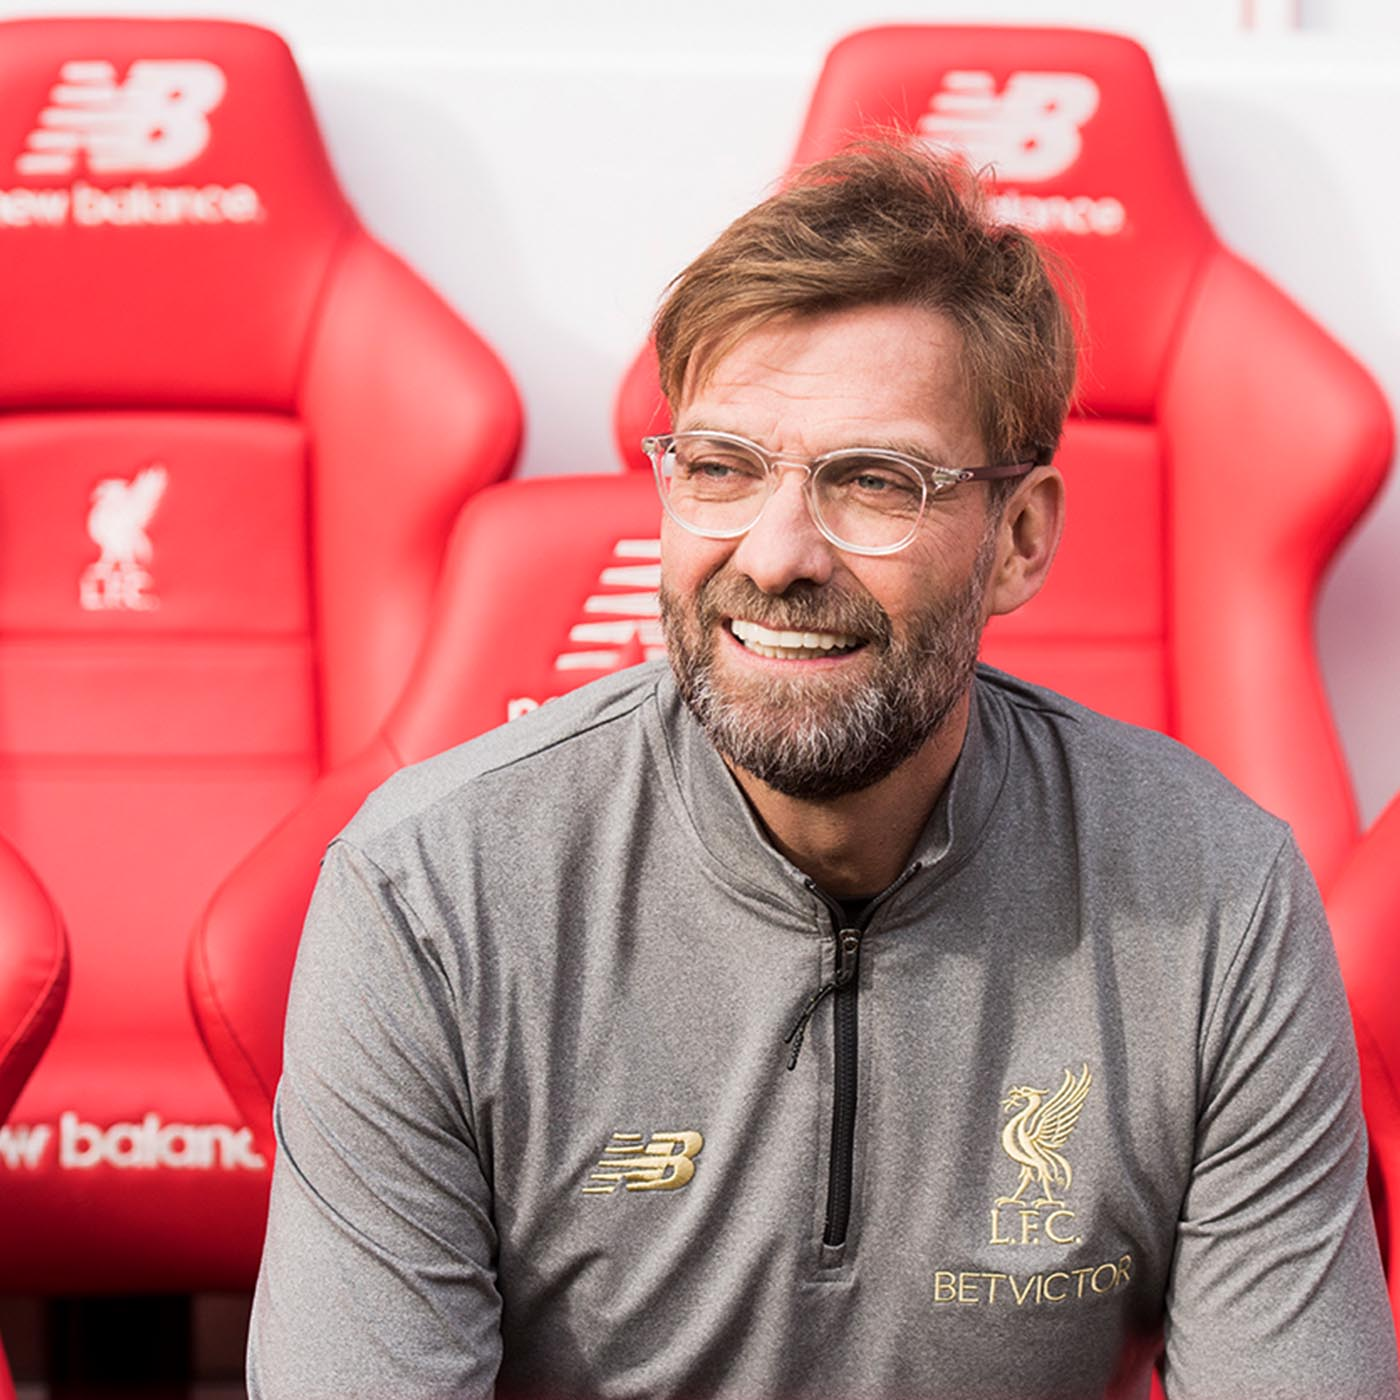 005230320 New Balance Liverpool Managers Collection Klopp body 0002 06.08.18 09.00  BST (2) FW18 Managers